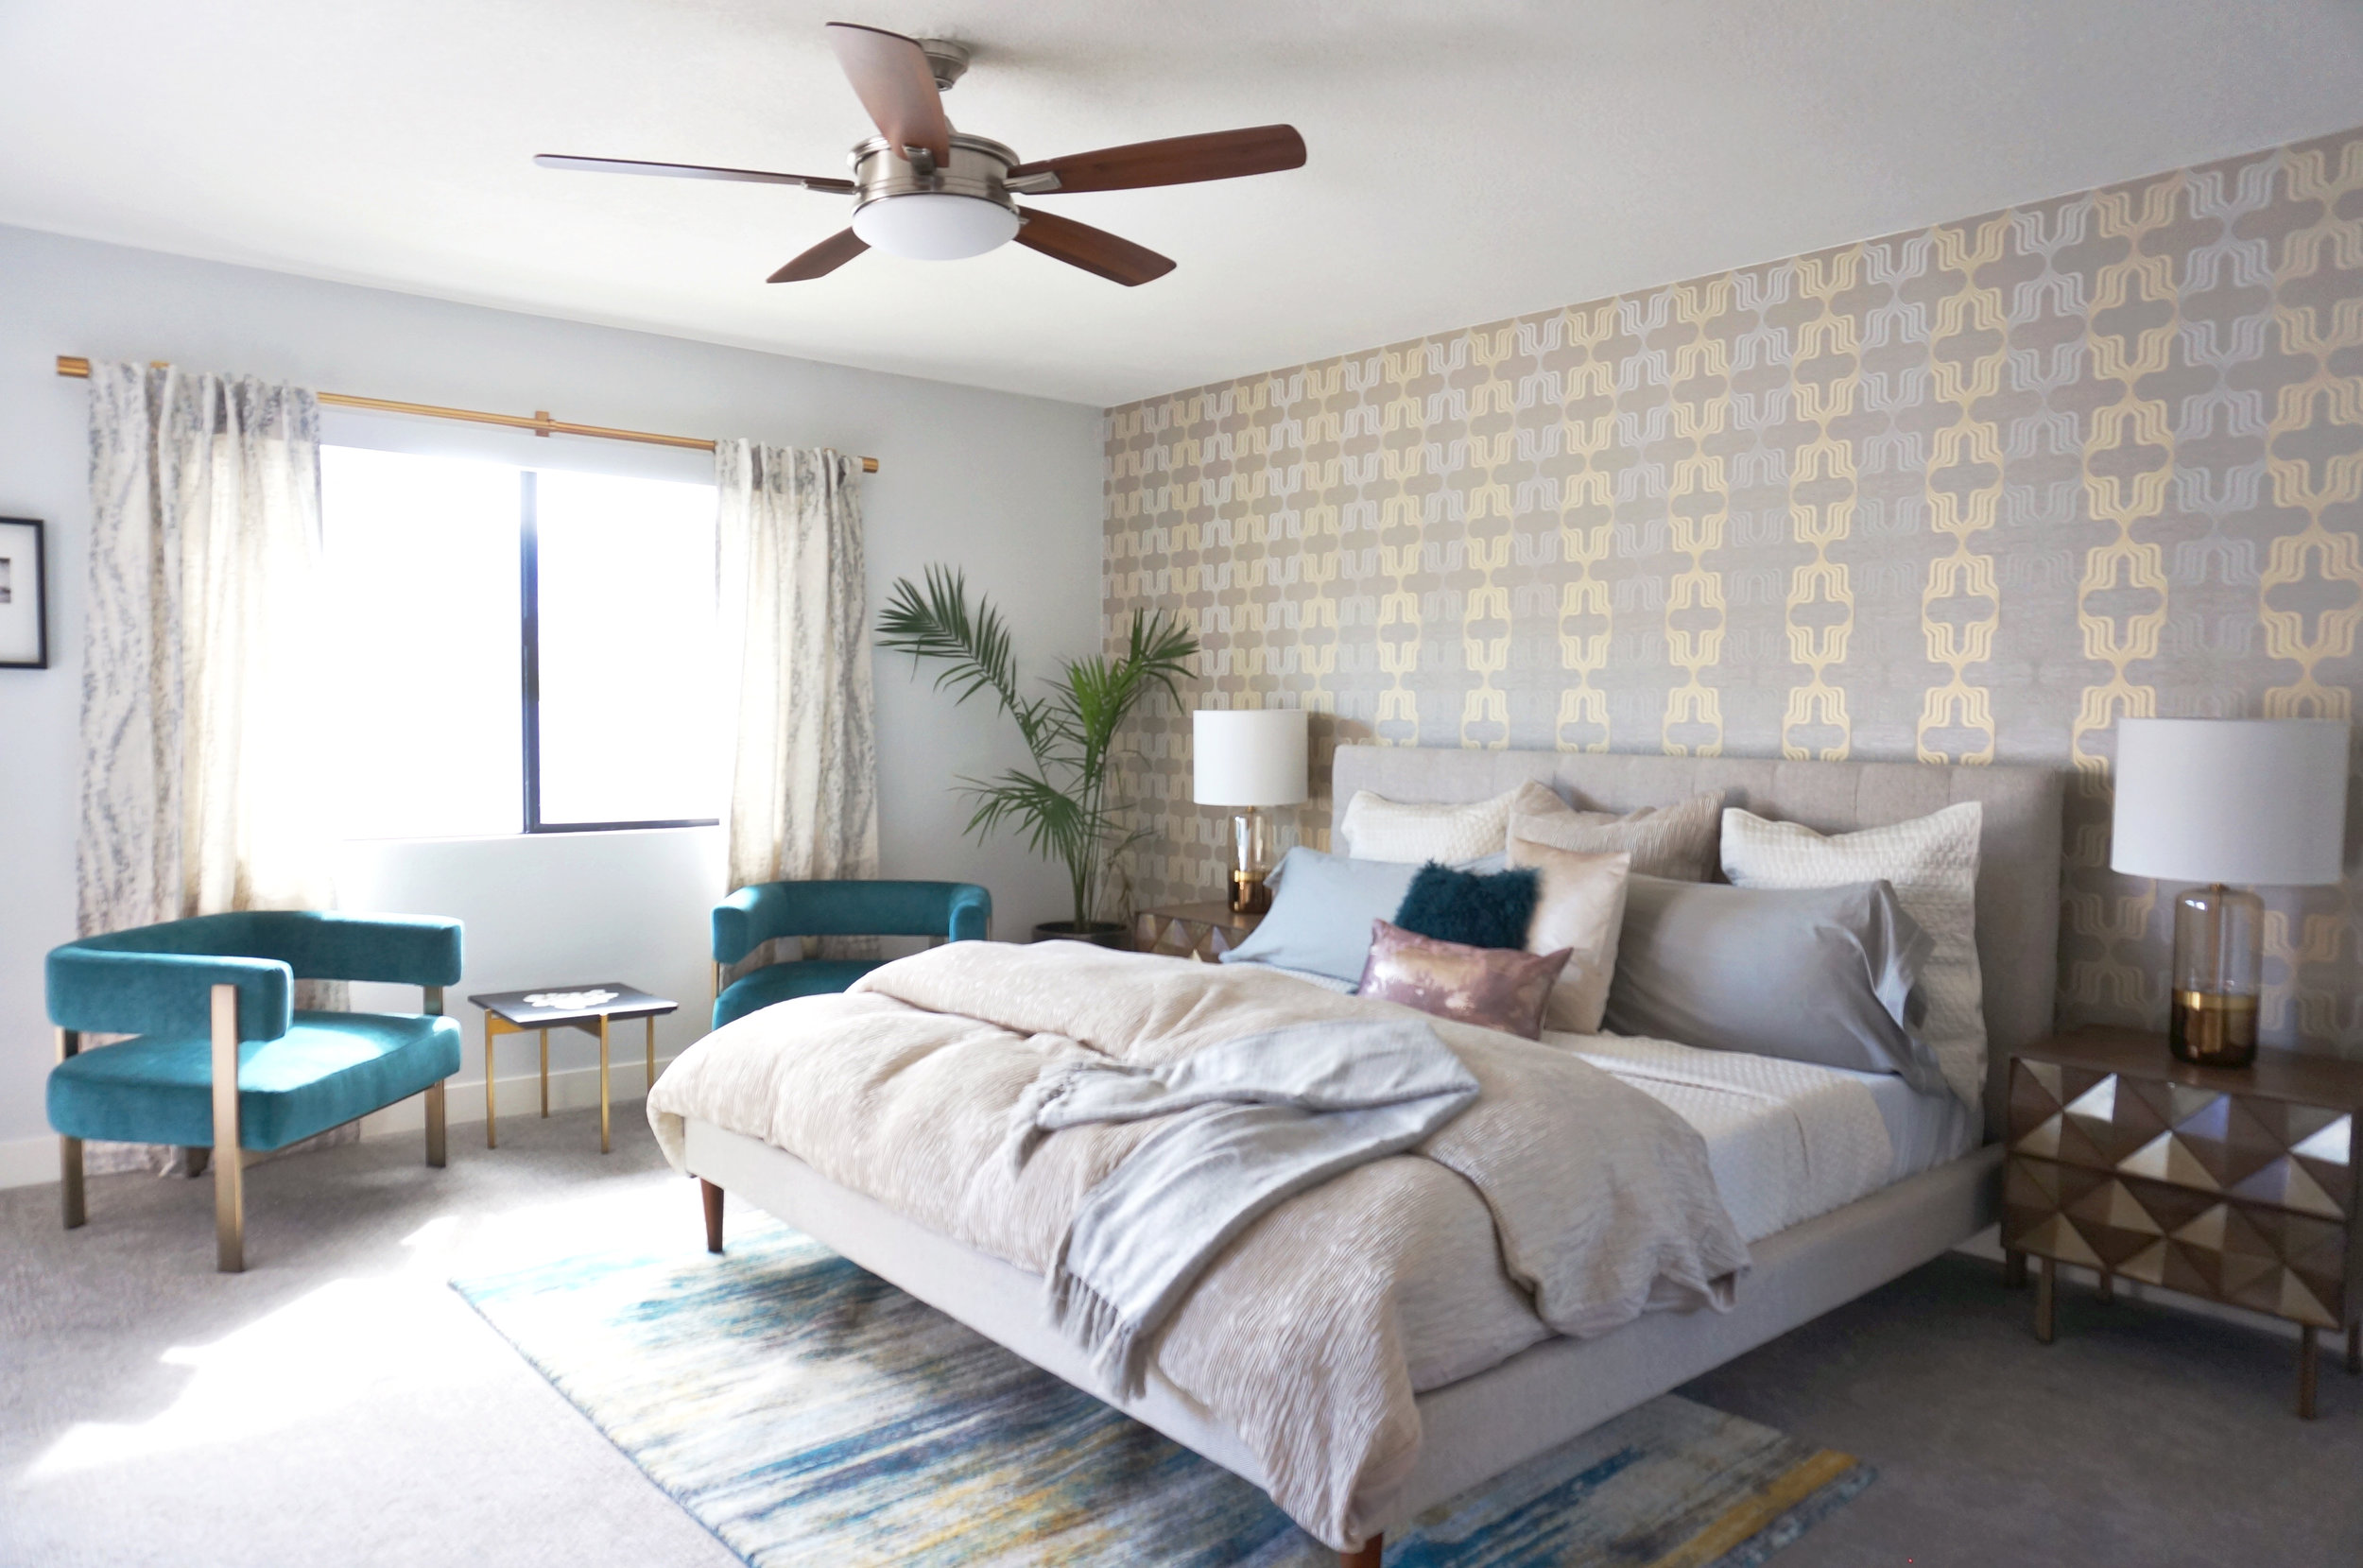 More velvet and metallic accents in the bedroom at the West Elm Pool House